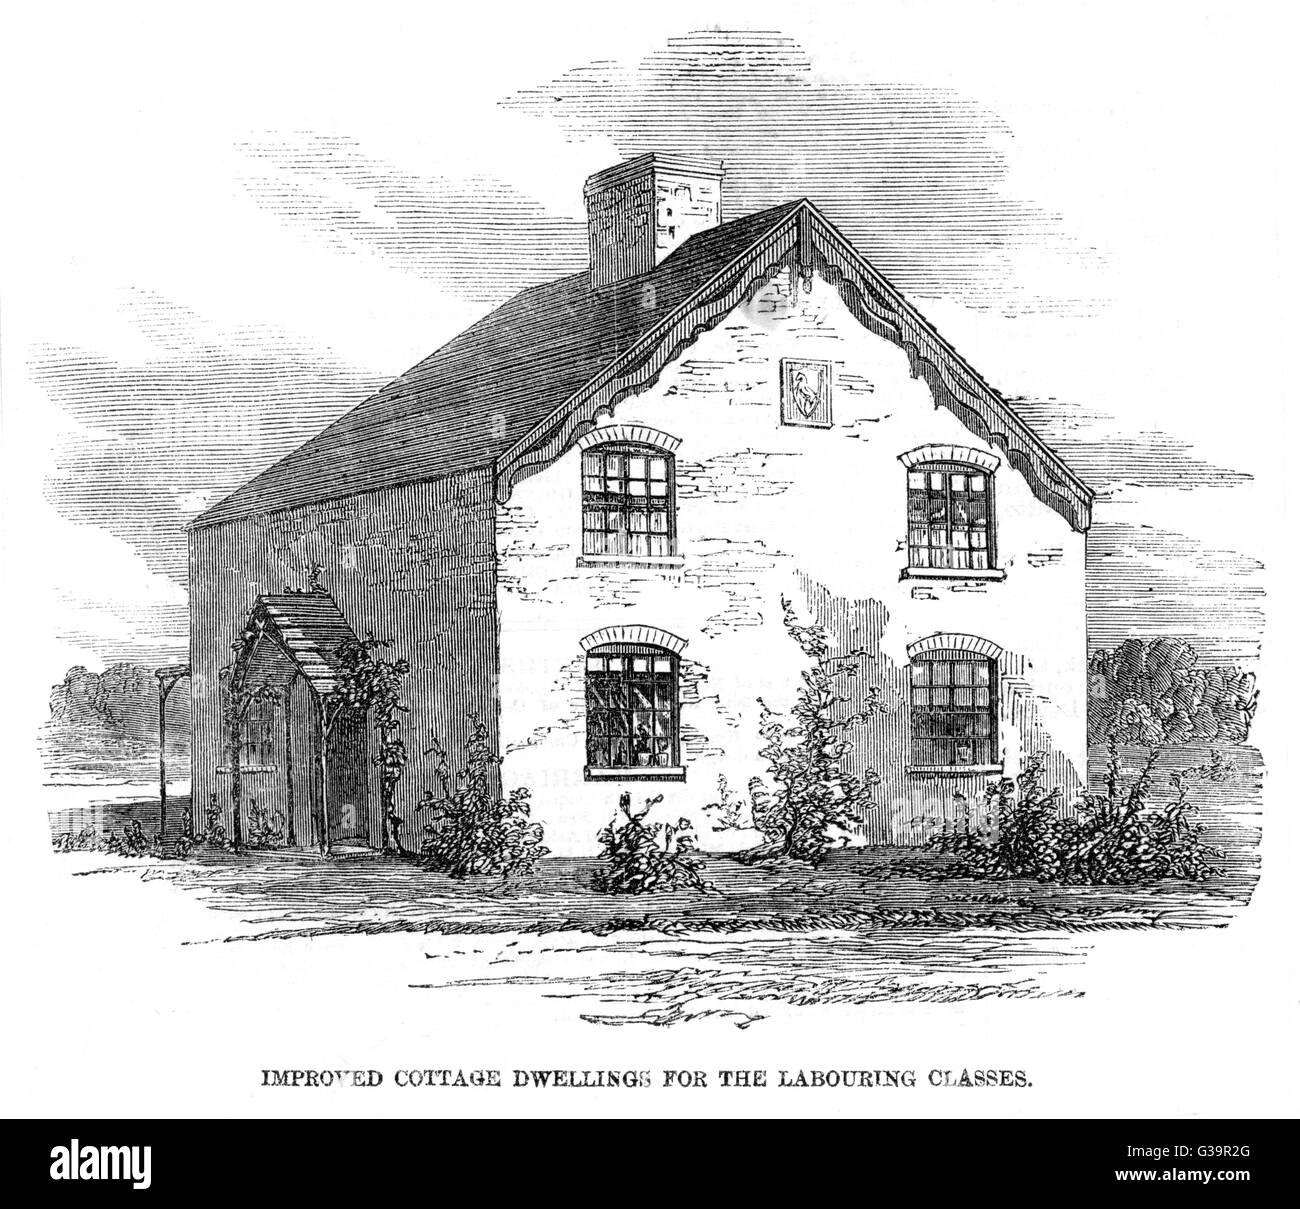 Improved cottage dwelling for  the labouring classes; the  illustration shows dwellings  for two families       - Stock Image